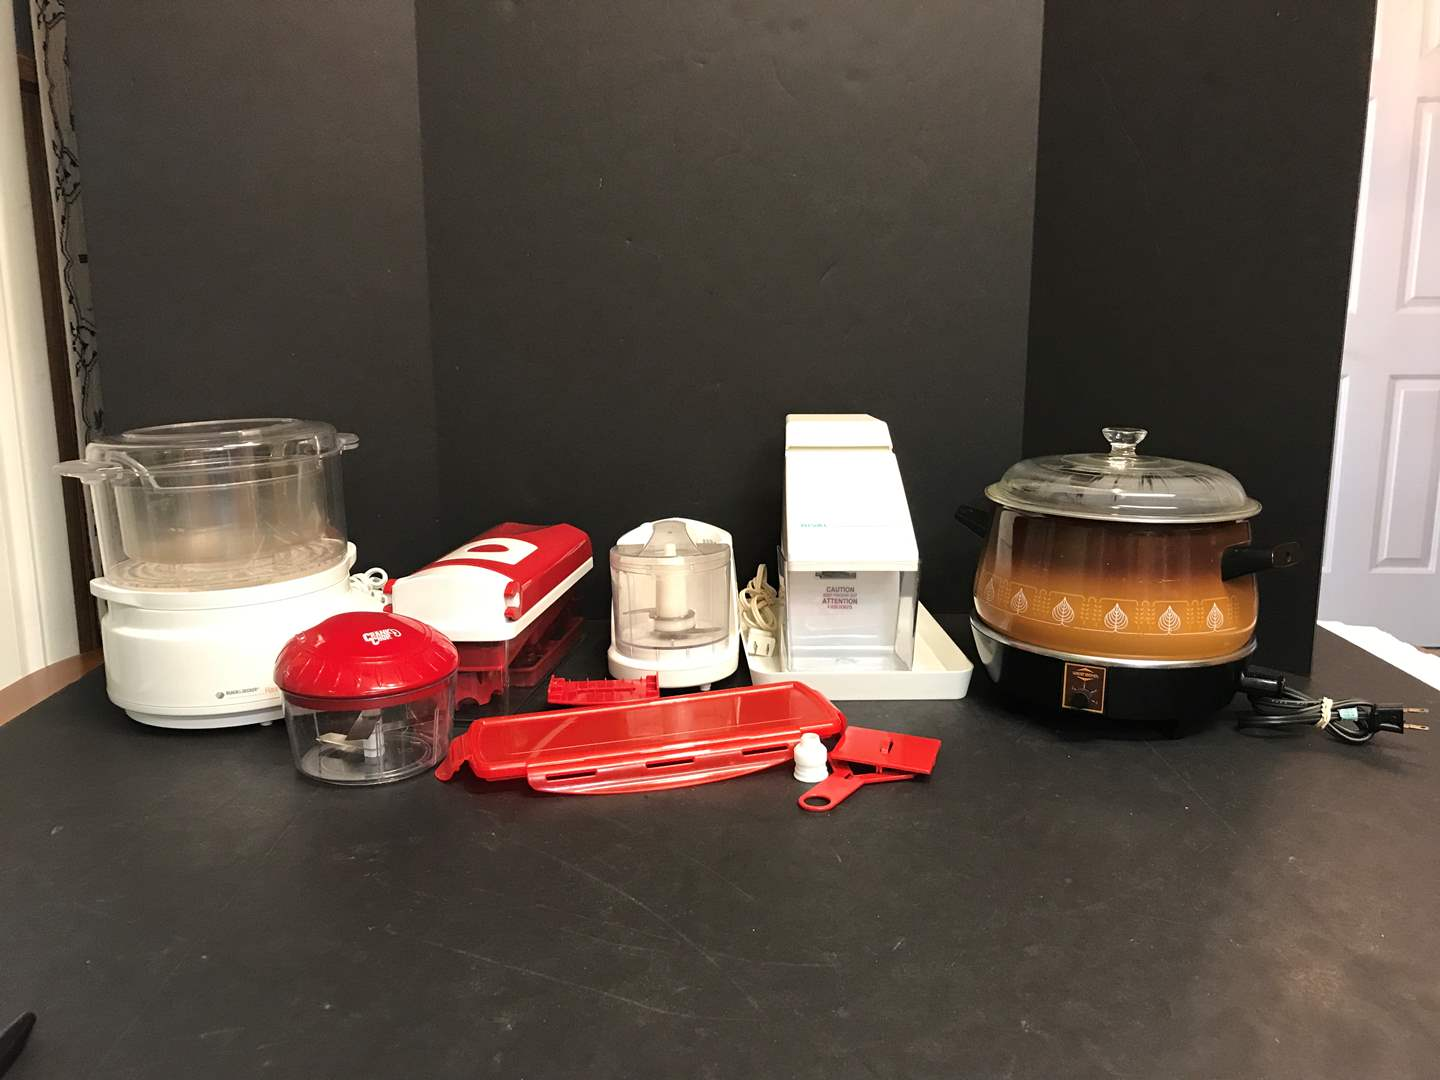 Lot # 58 - Black & Decker Handy Steamer, Rival Ice Crusher, Vegetable Choppers & More (main image)